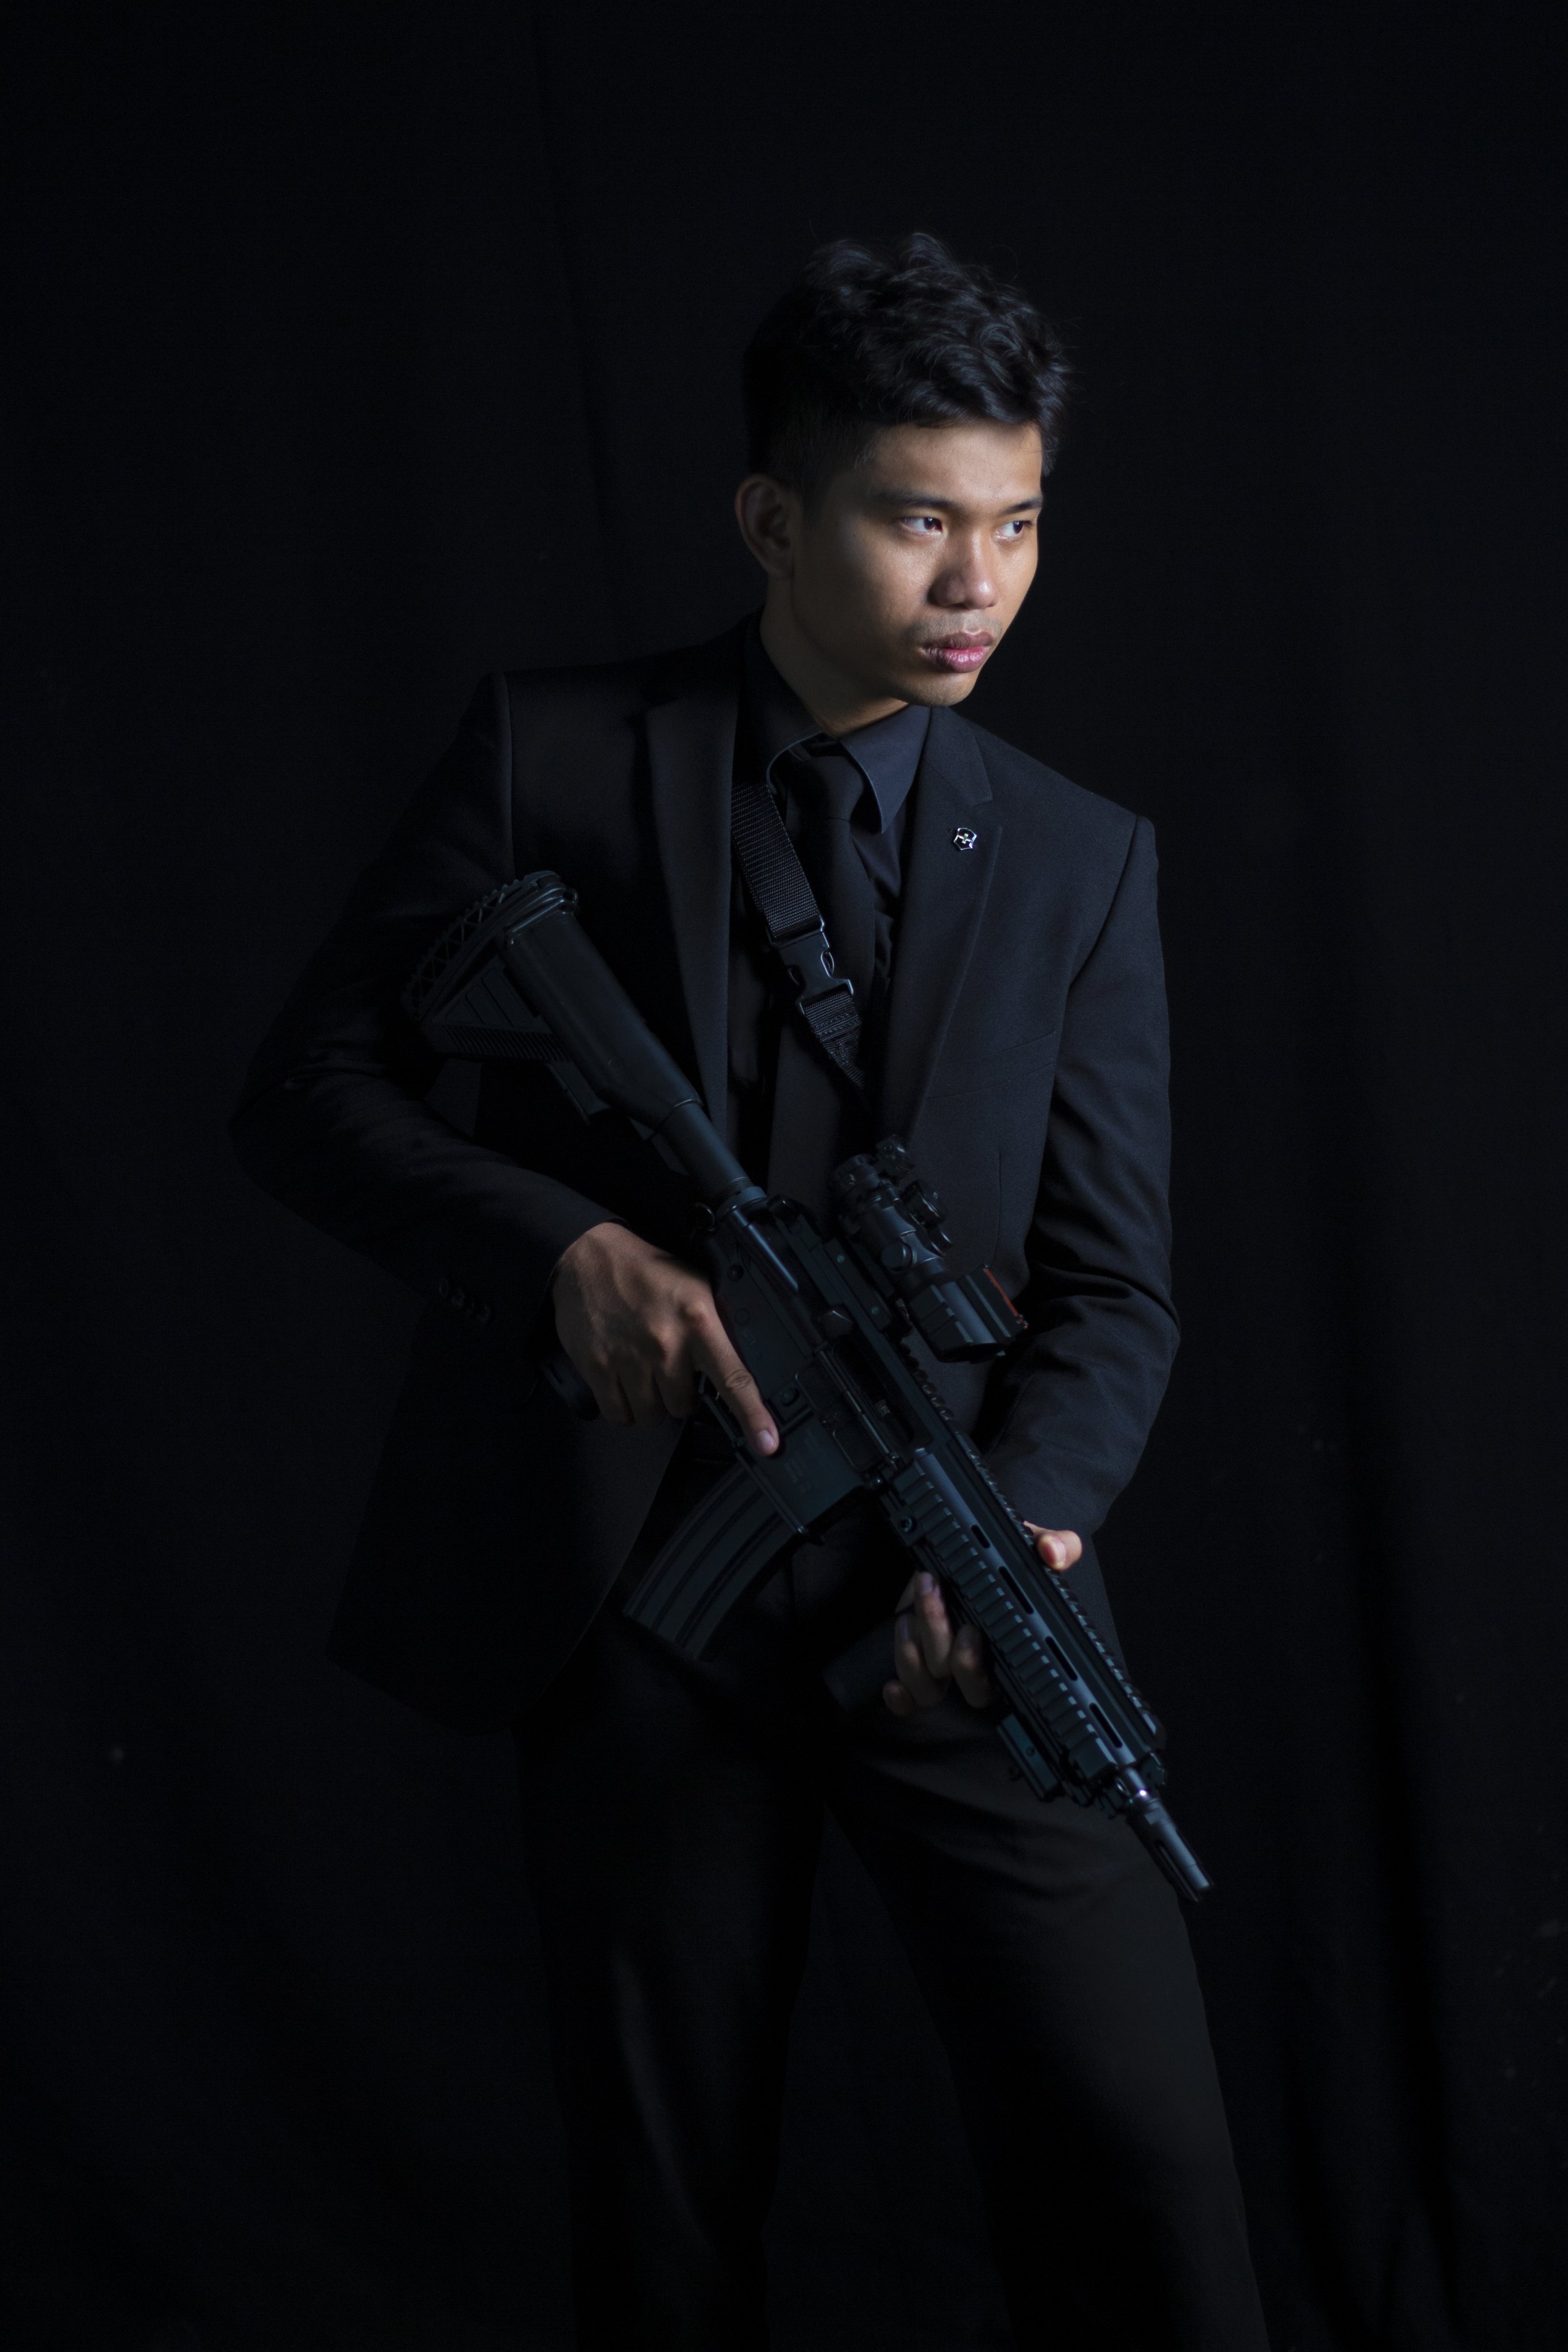 Man Wearing Black Suit and Carrying M4 Carbine With Scope